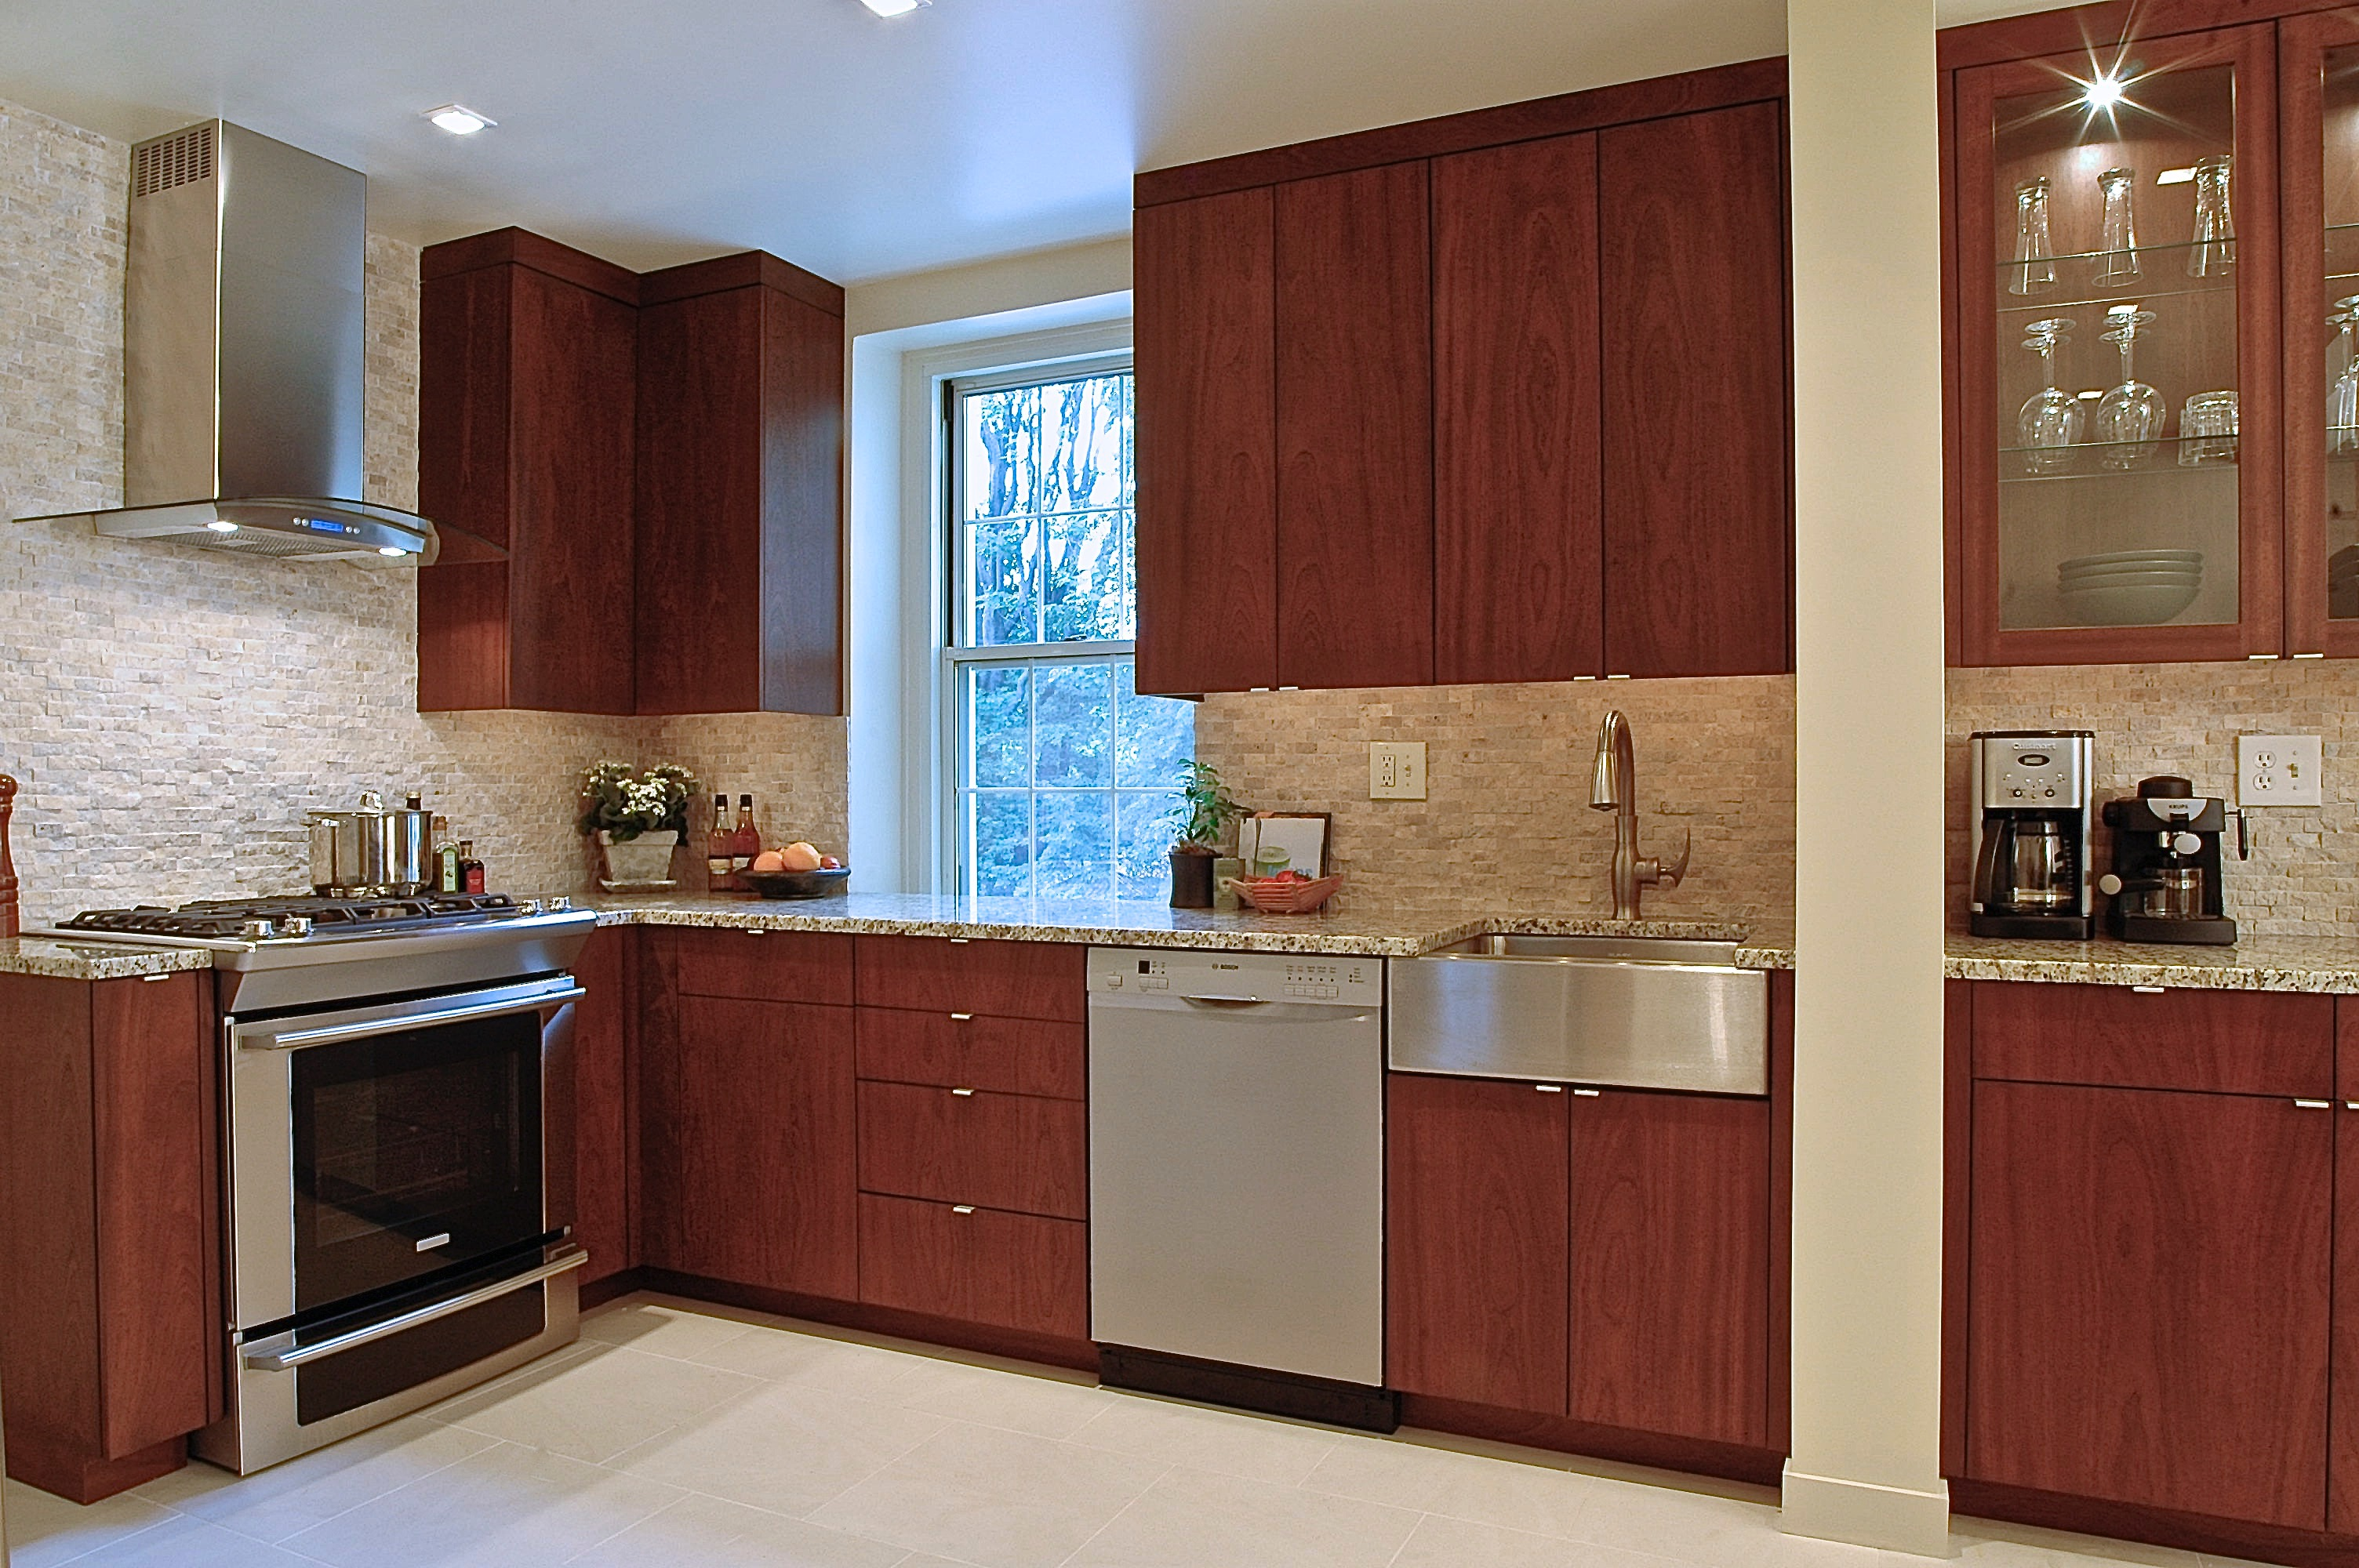 Kitchen Furniturecom A Guide To Choosing Kitchen Cabinets Curbed